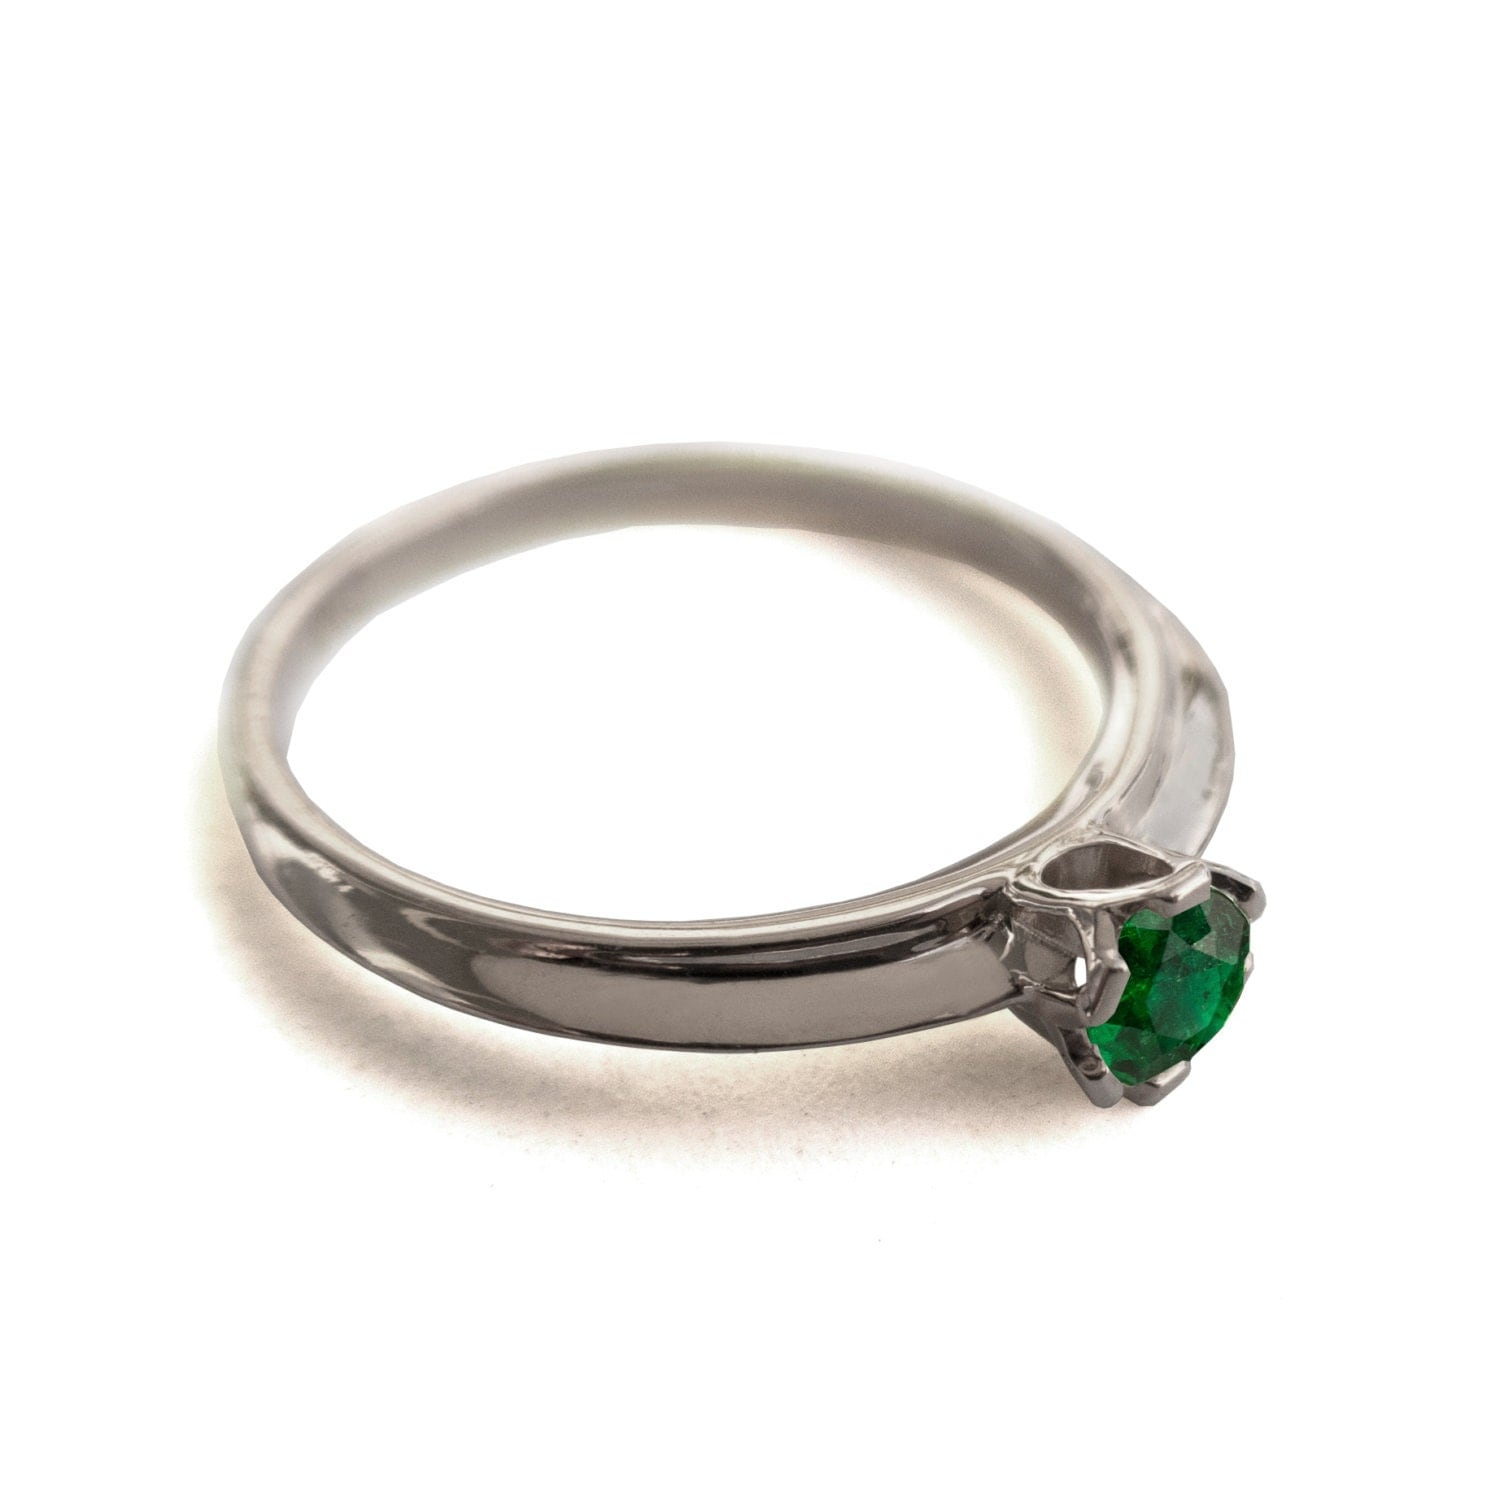 Emerald Ring 14K White Gold and Emerald engagement